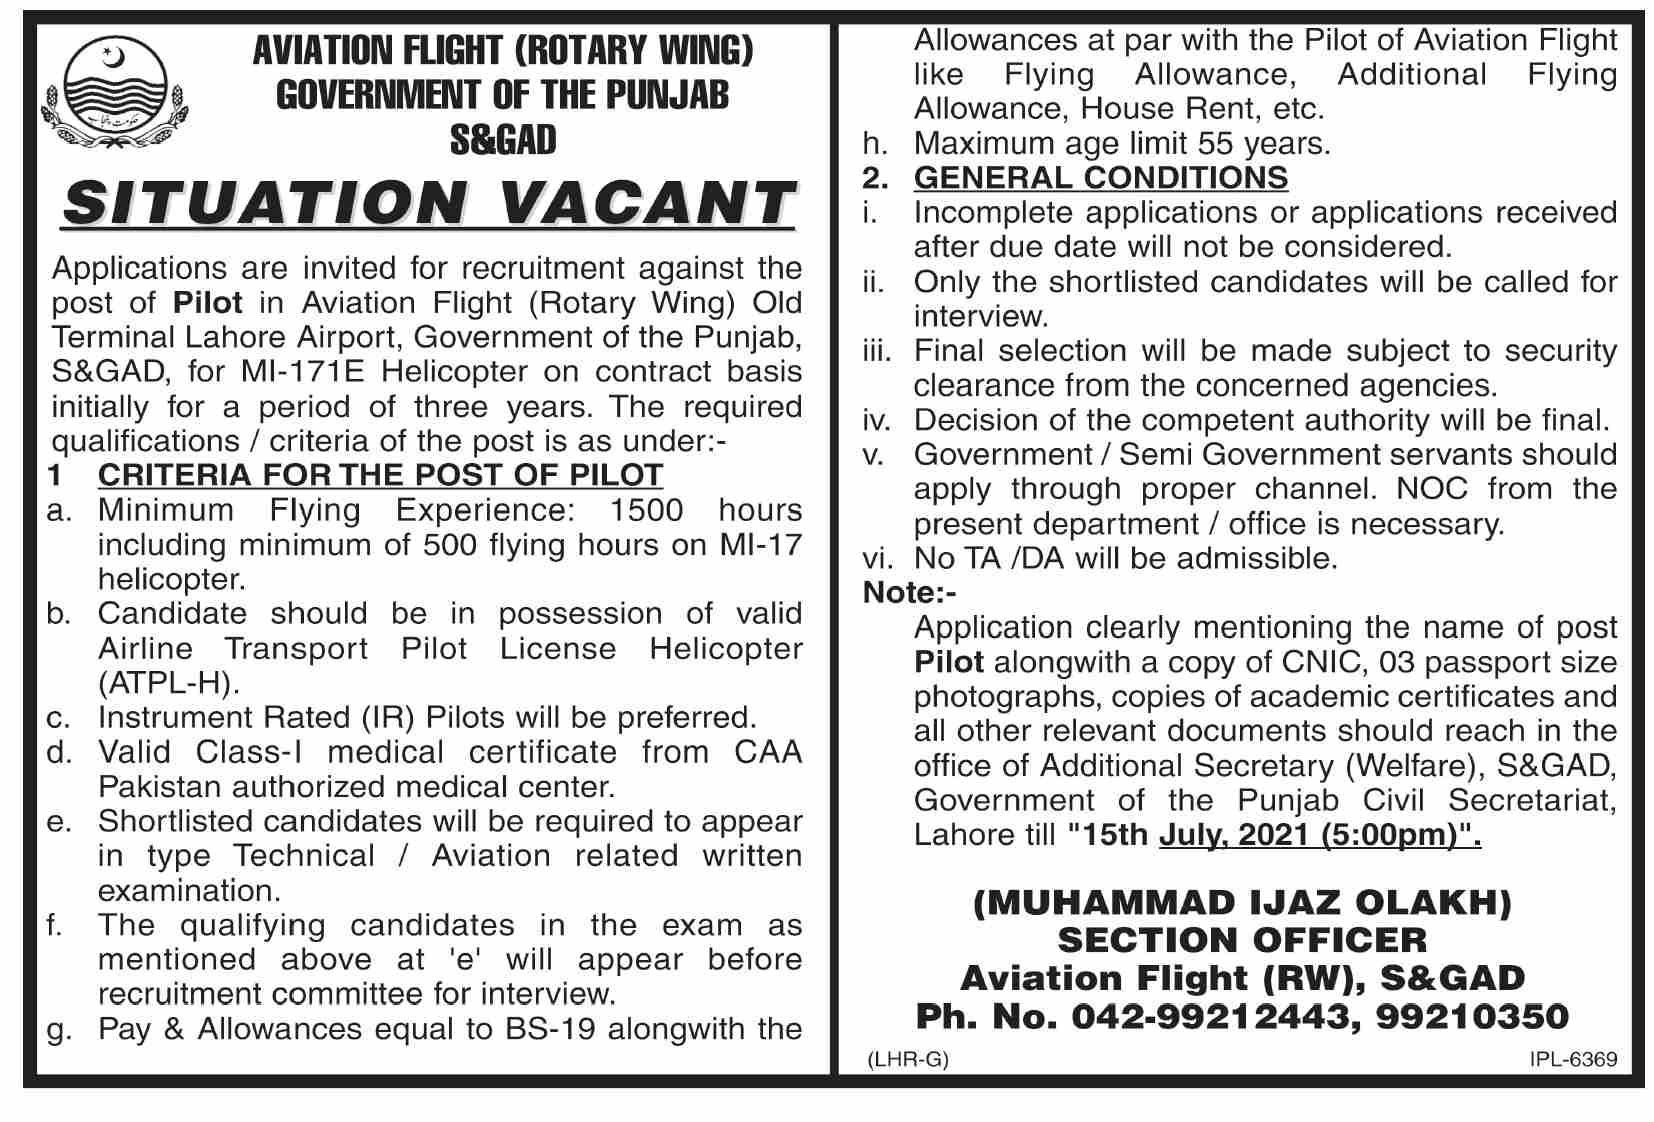 Aviation Flight Rotary Wing Job June 2021 For Pilot in Lahore